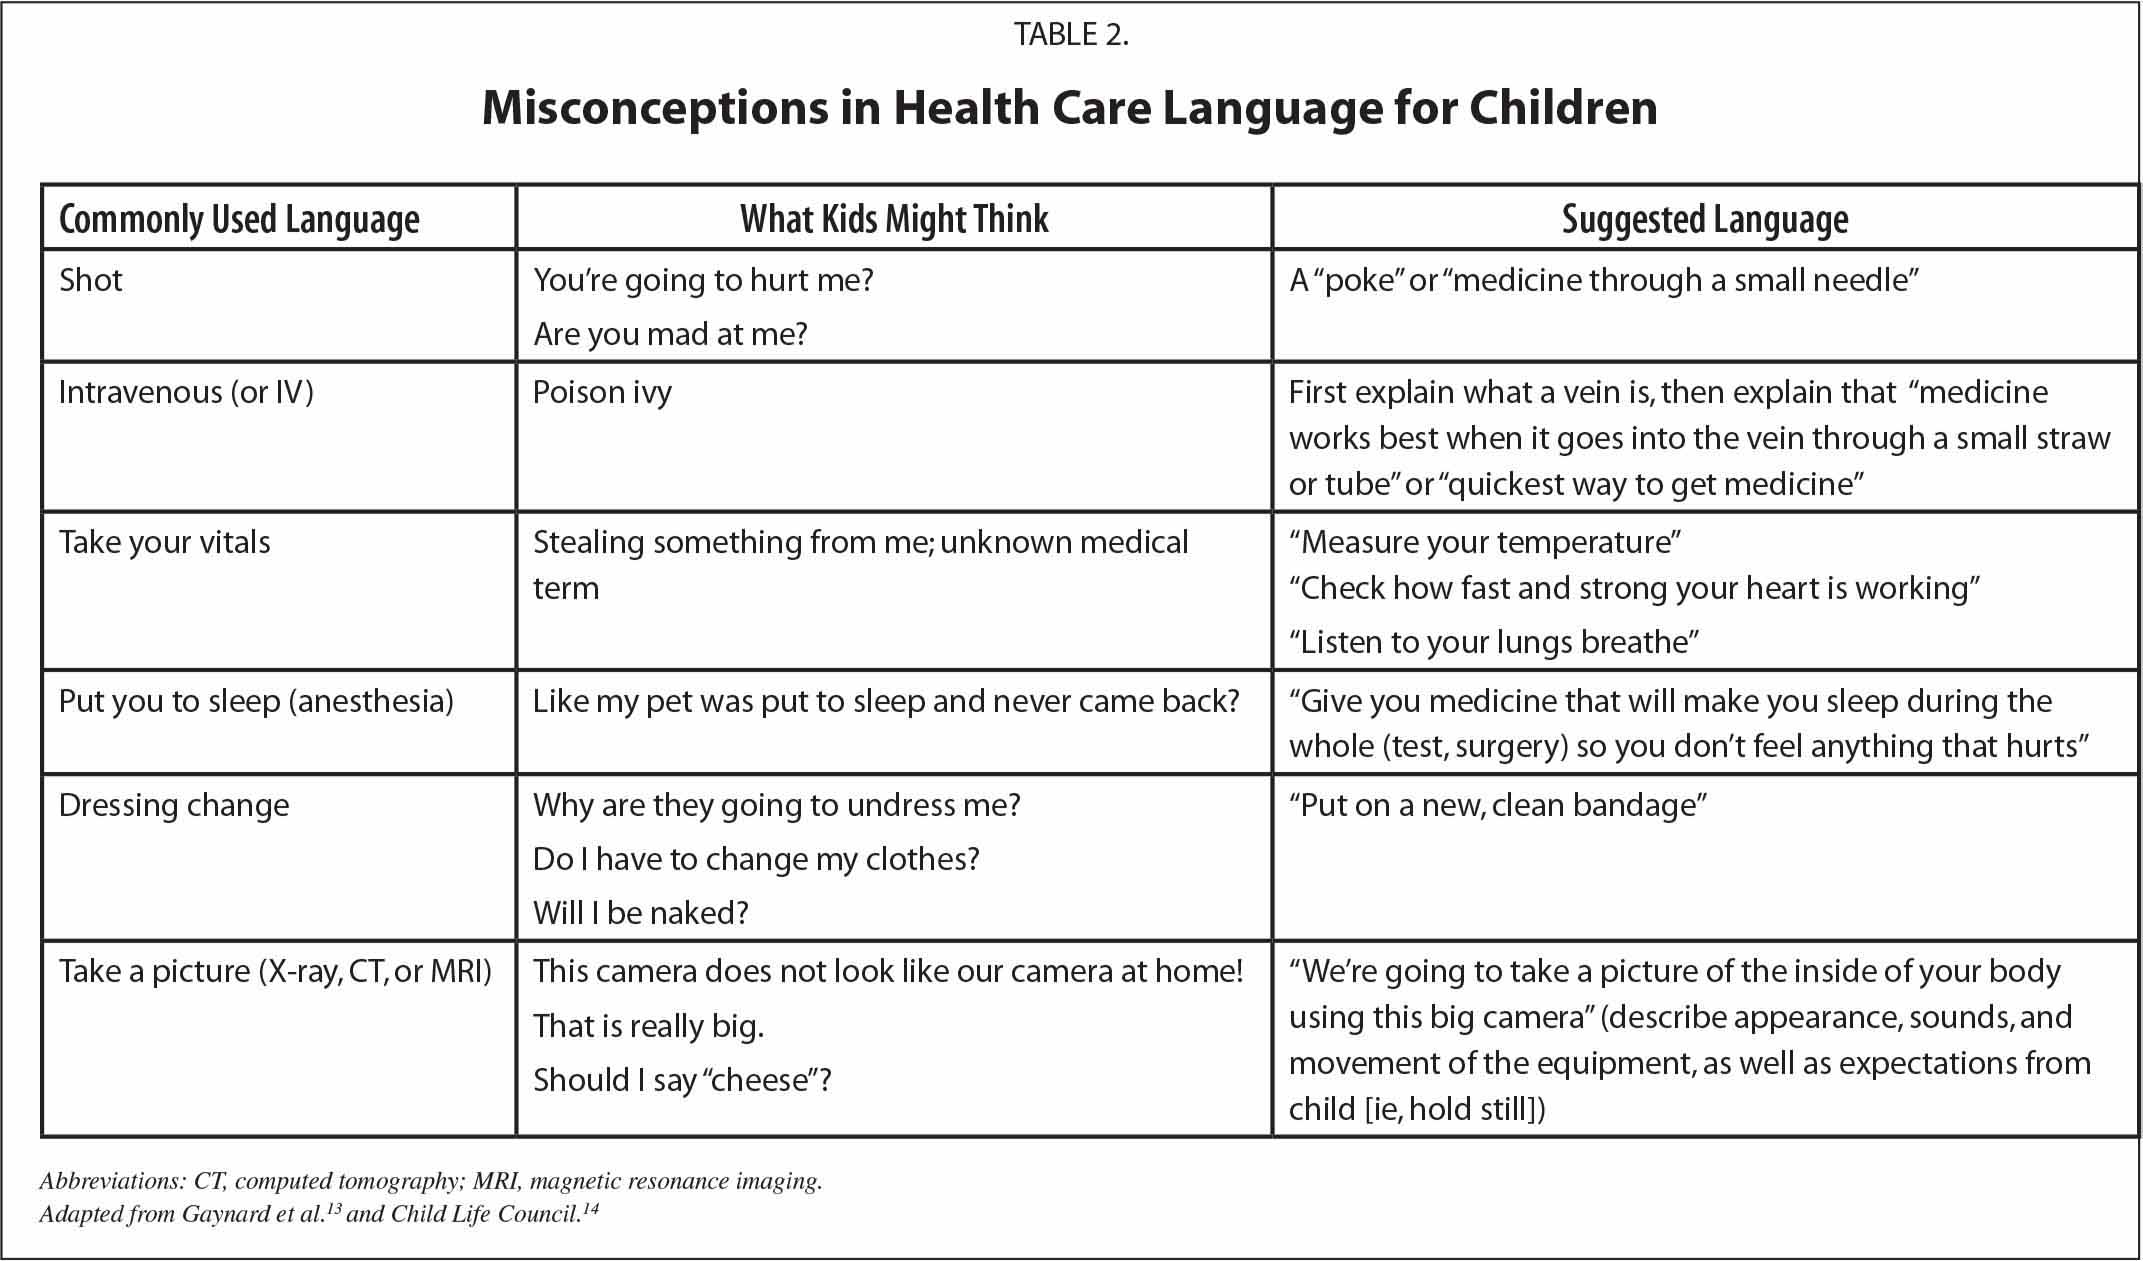 Misconceptions in Health Care Language for Children